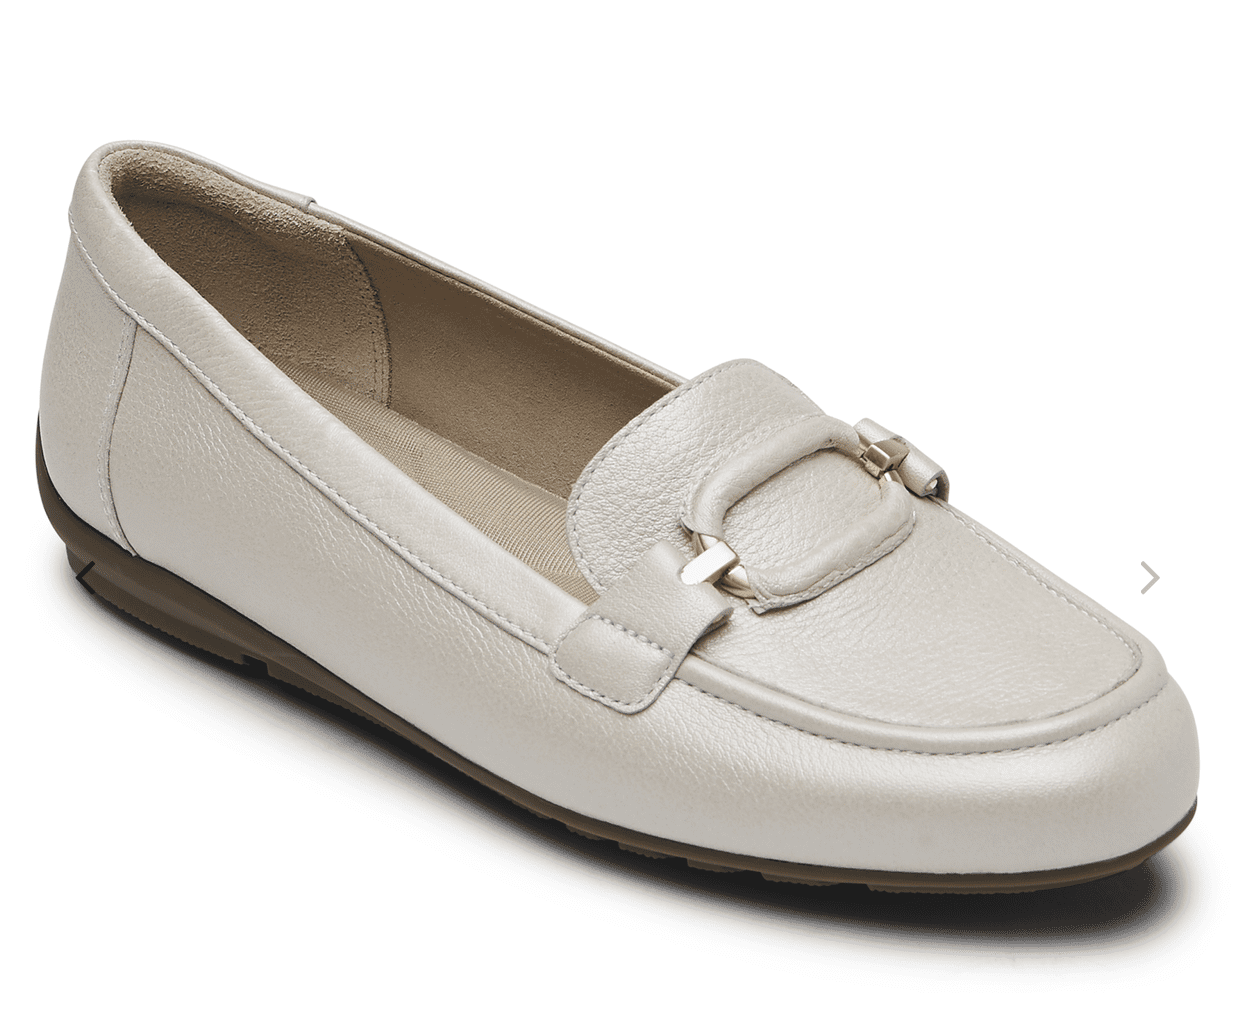 Rockport: 2 for  on select women's styles